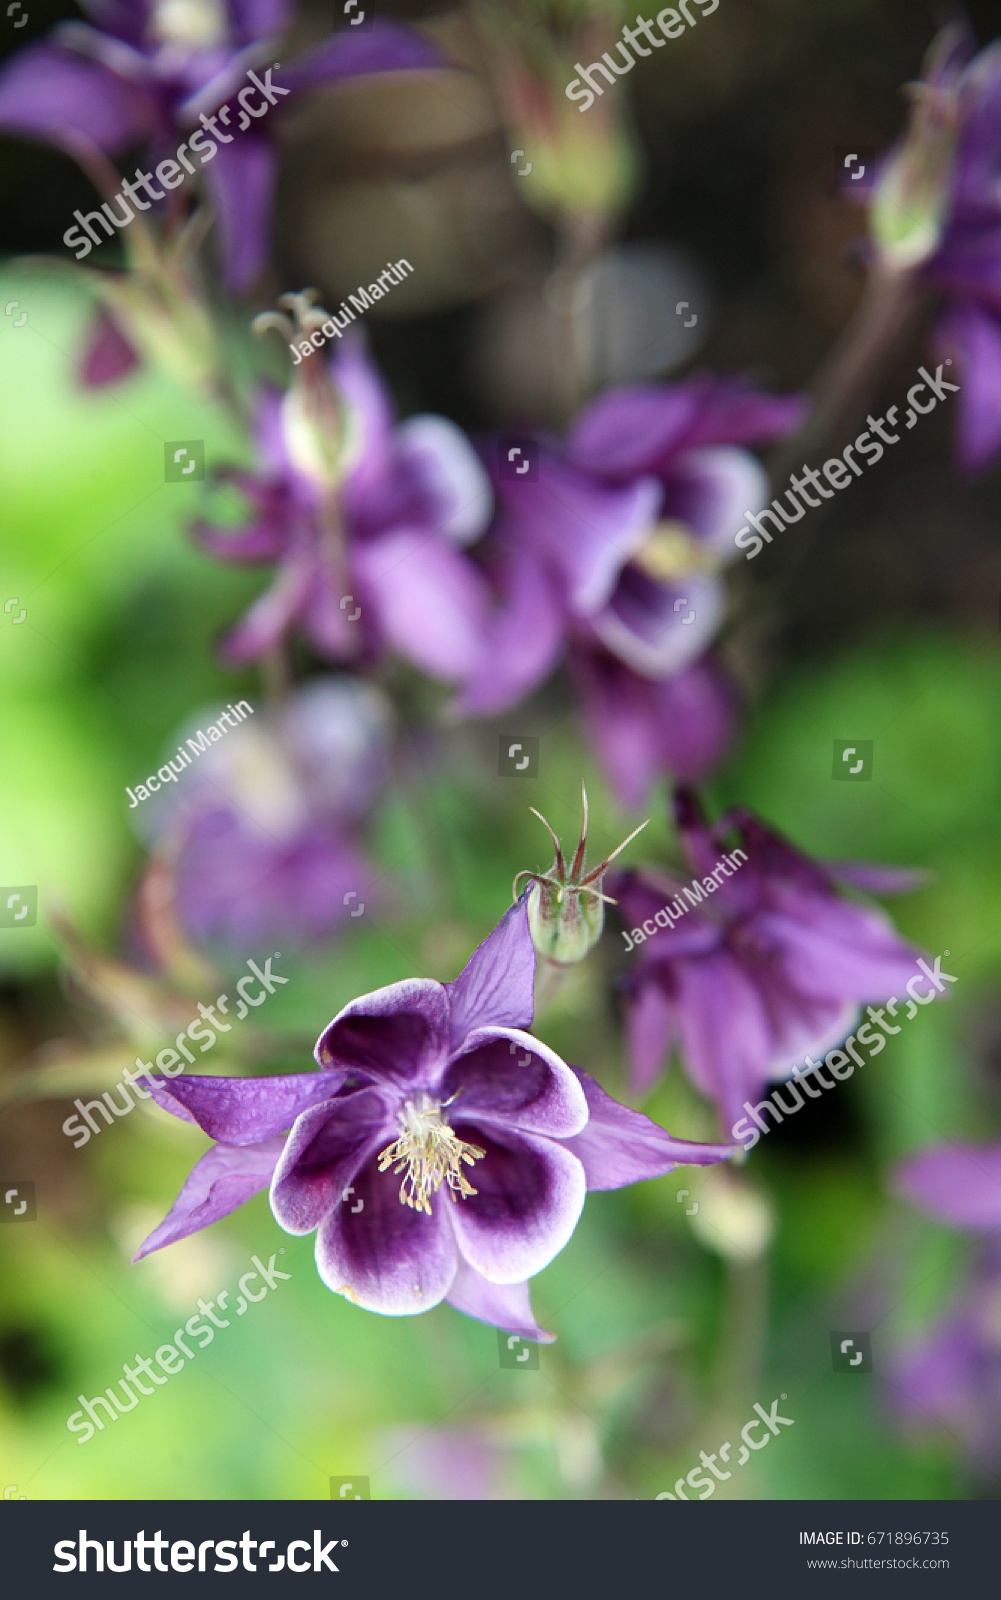 Pretty purple grannys bonnet flowers stock photo royalty free pretty purple grannys bonnet flowers stock photo royalty free 671896735 shutterstock mightylinksfo